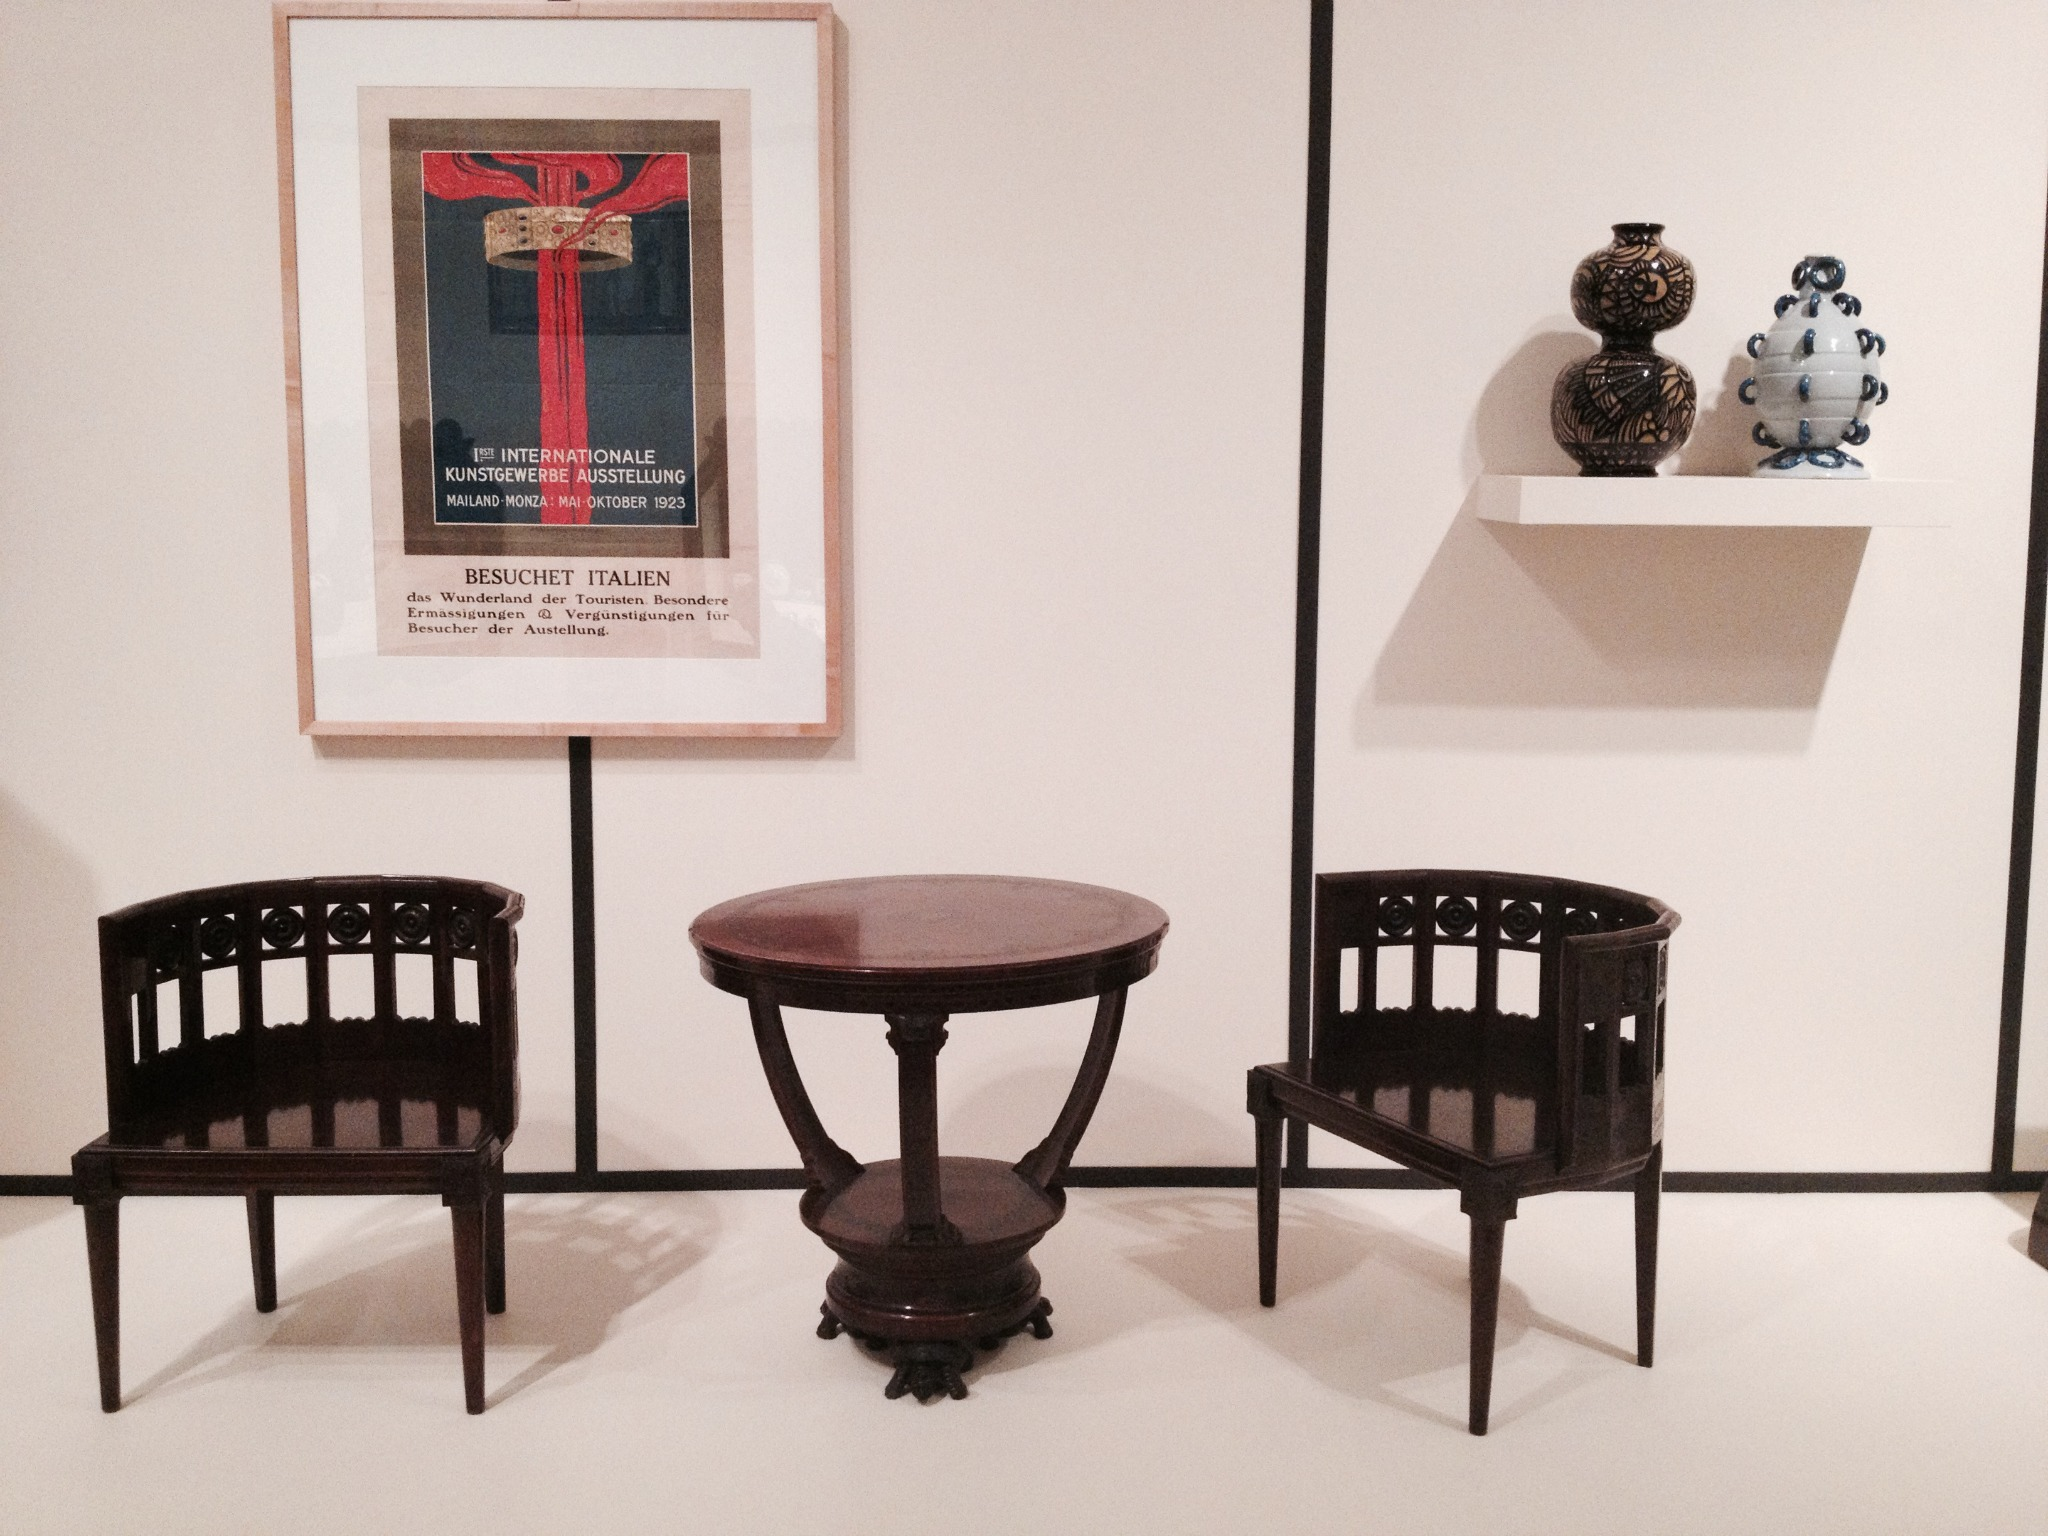 uf application essay best uf application essay best drodgereport web fc com home fc uf application essay best drodgereport web fc com home fc